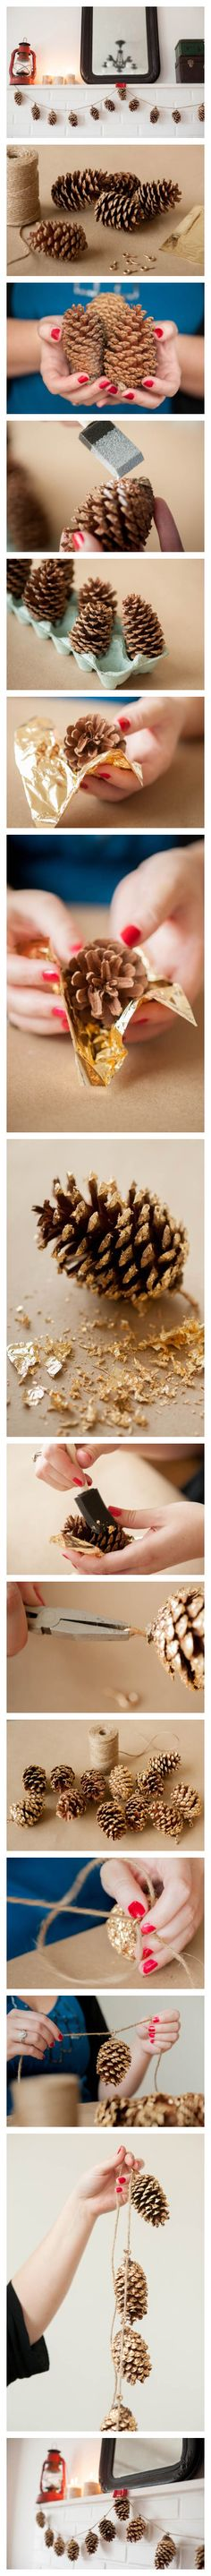 pine cone garland--cute in dressing room, or add as a garland w/ more pine to the kitchen pot-hanger...could do a theme of pinecone garland in kitchen